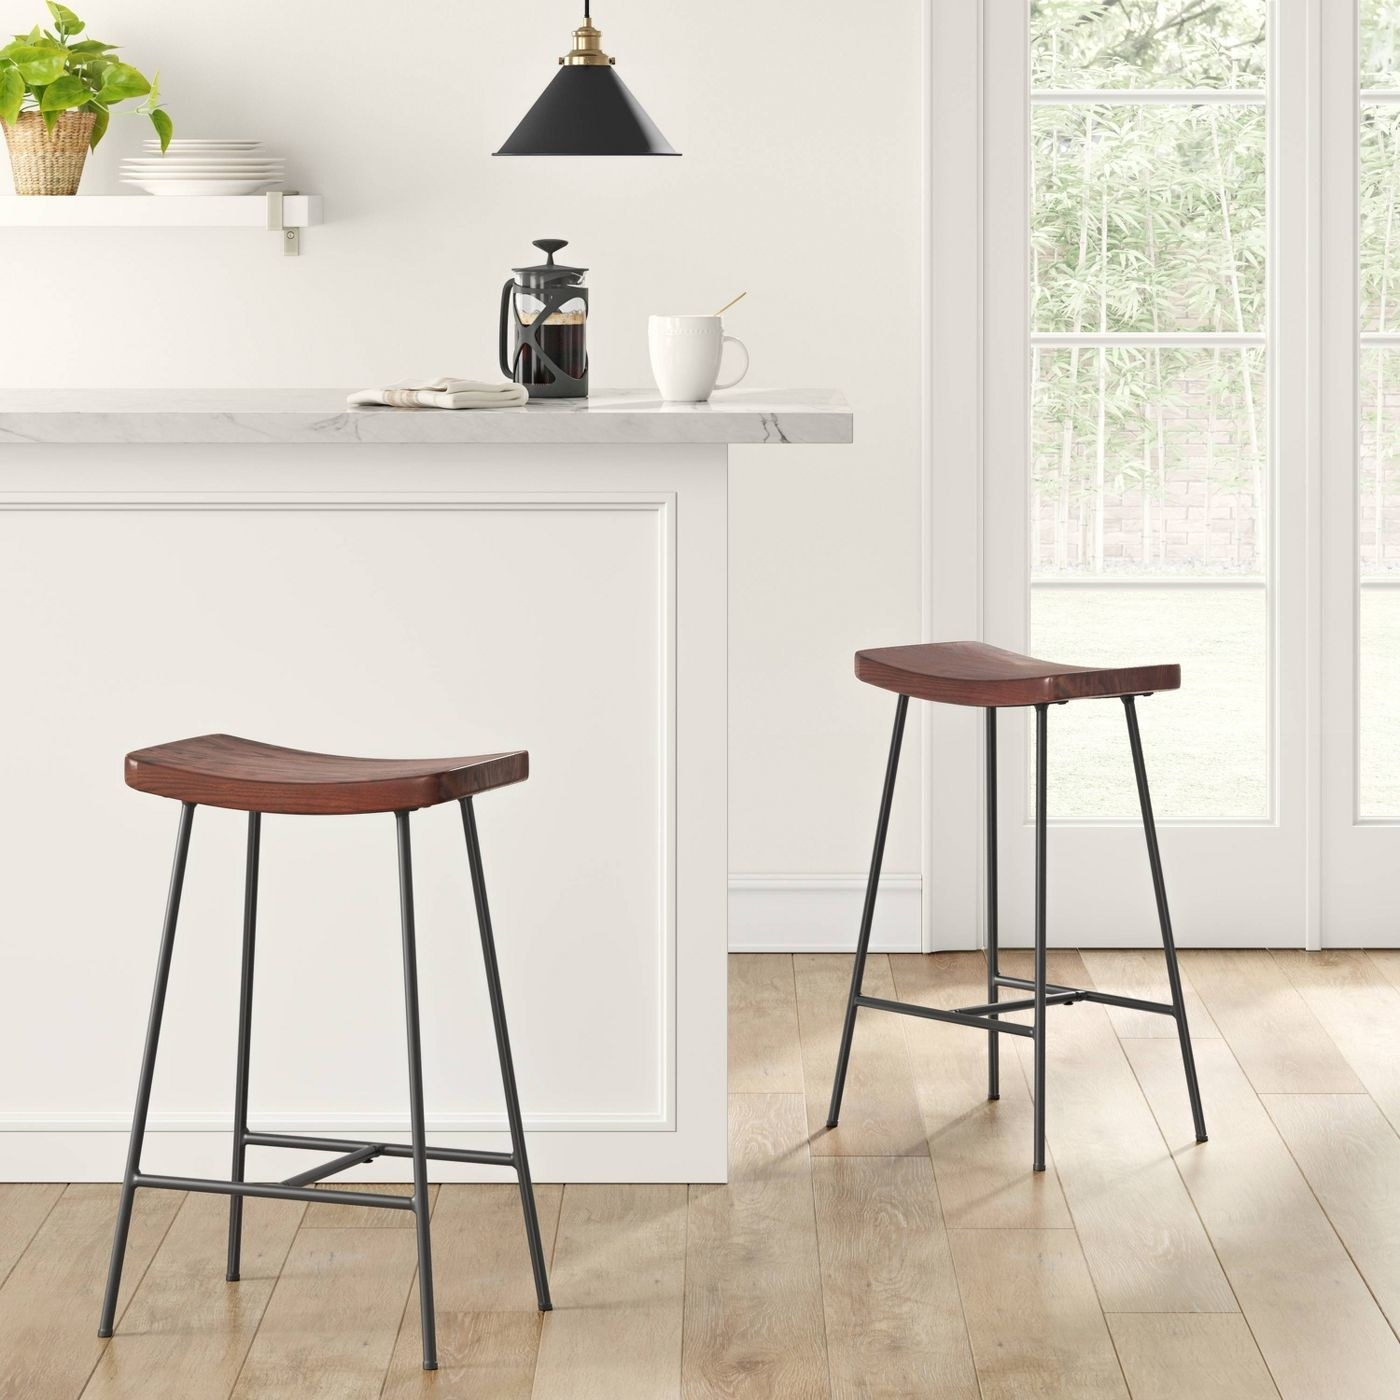 two stools next to a counter